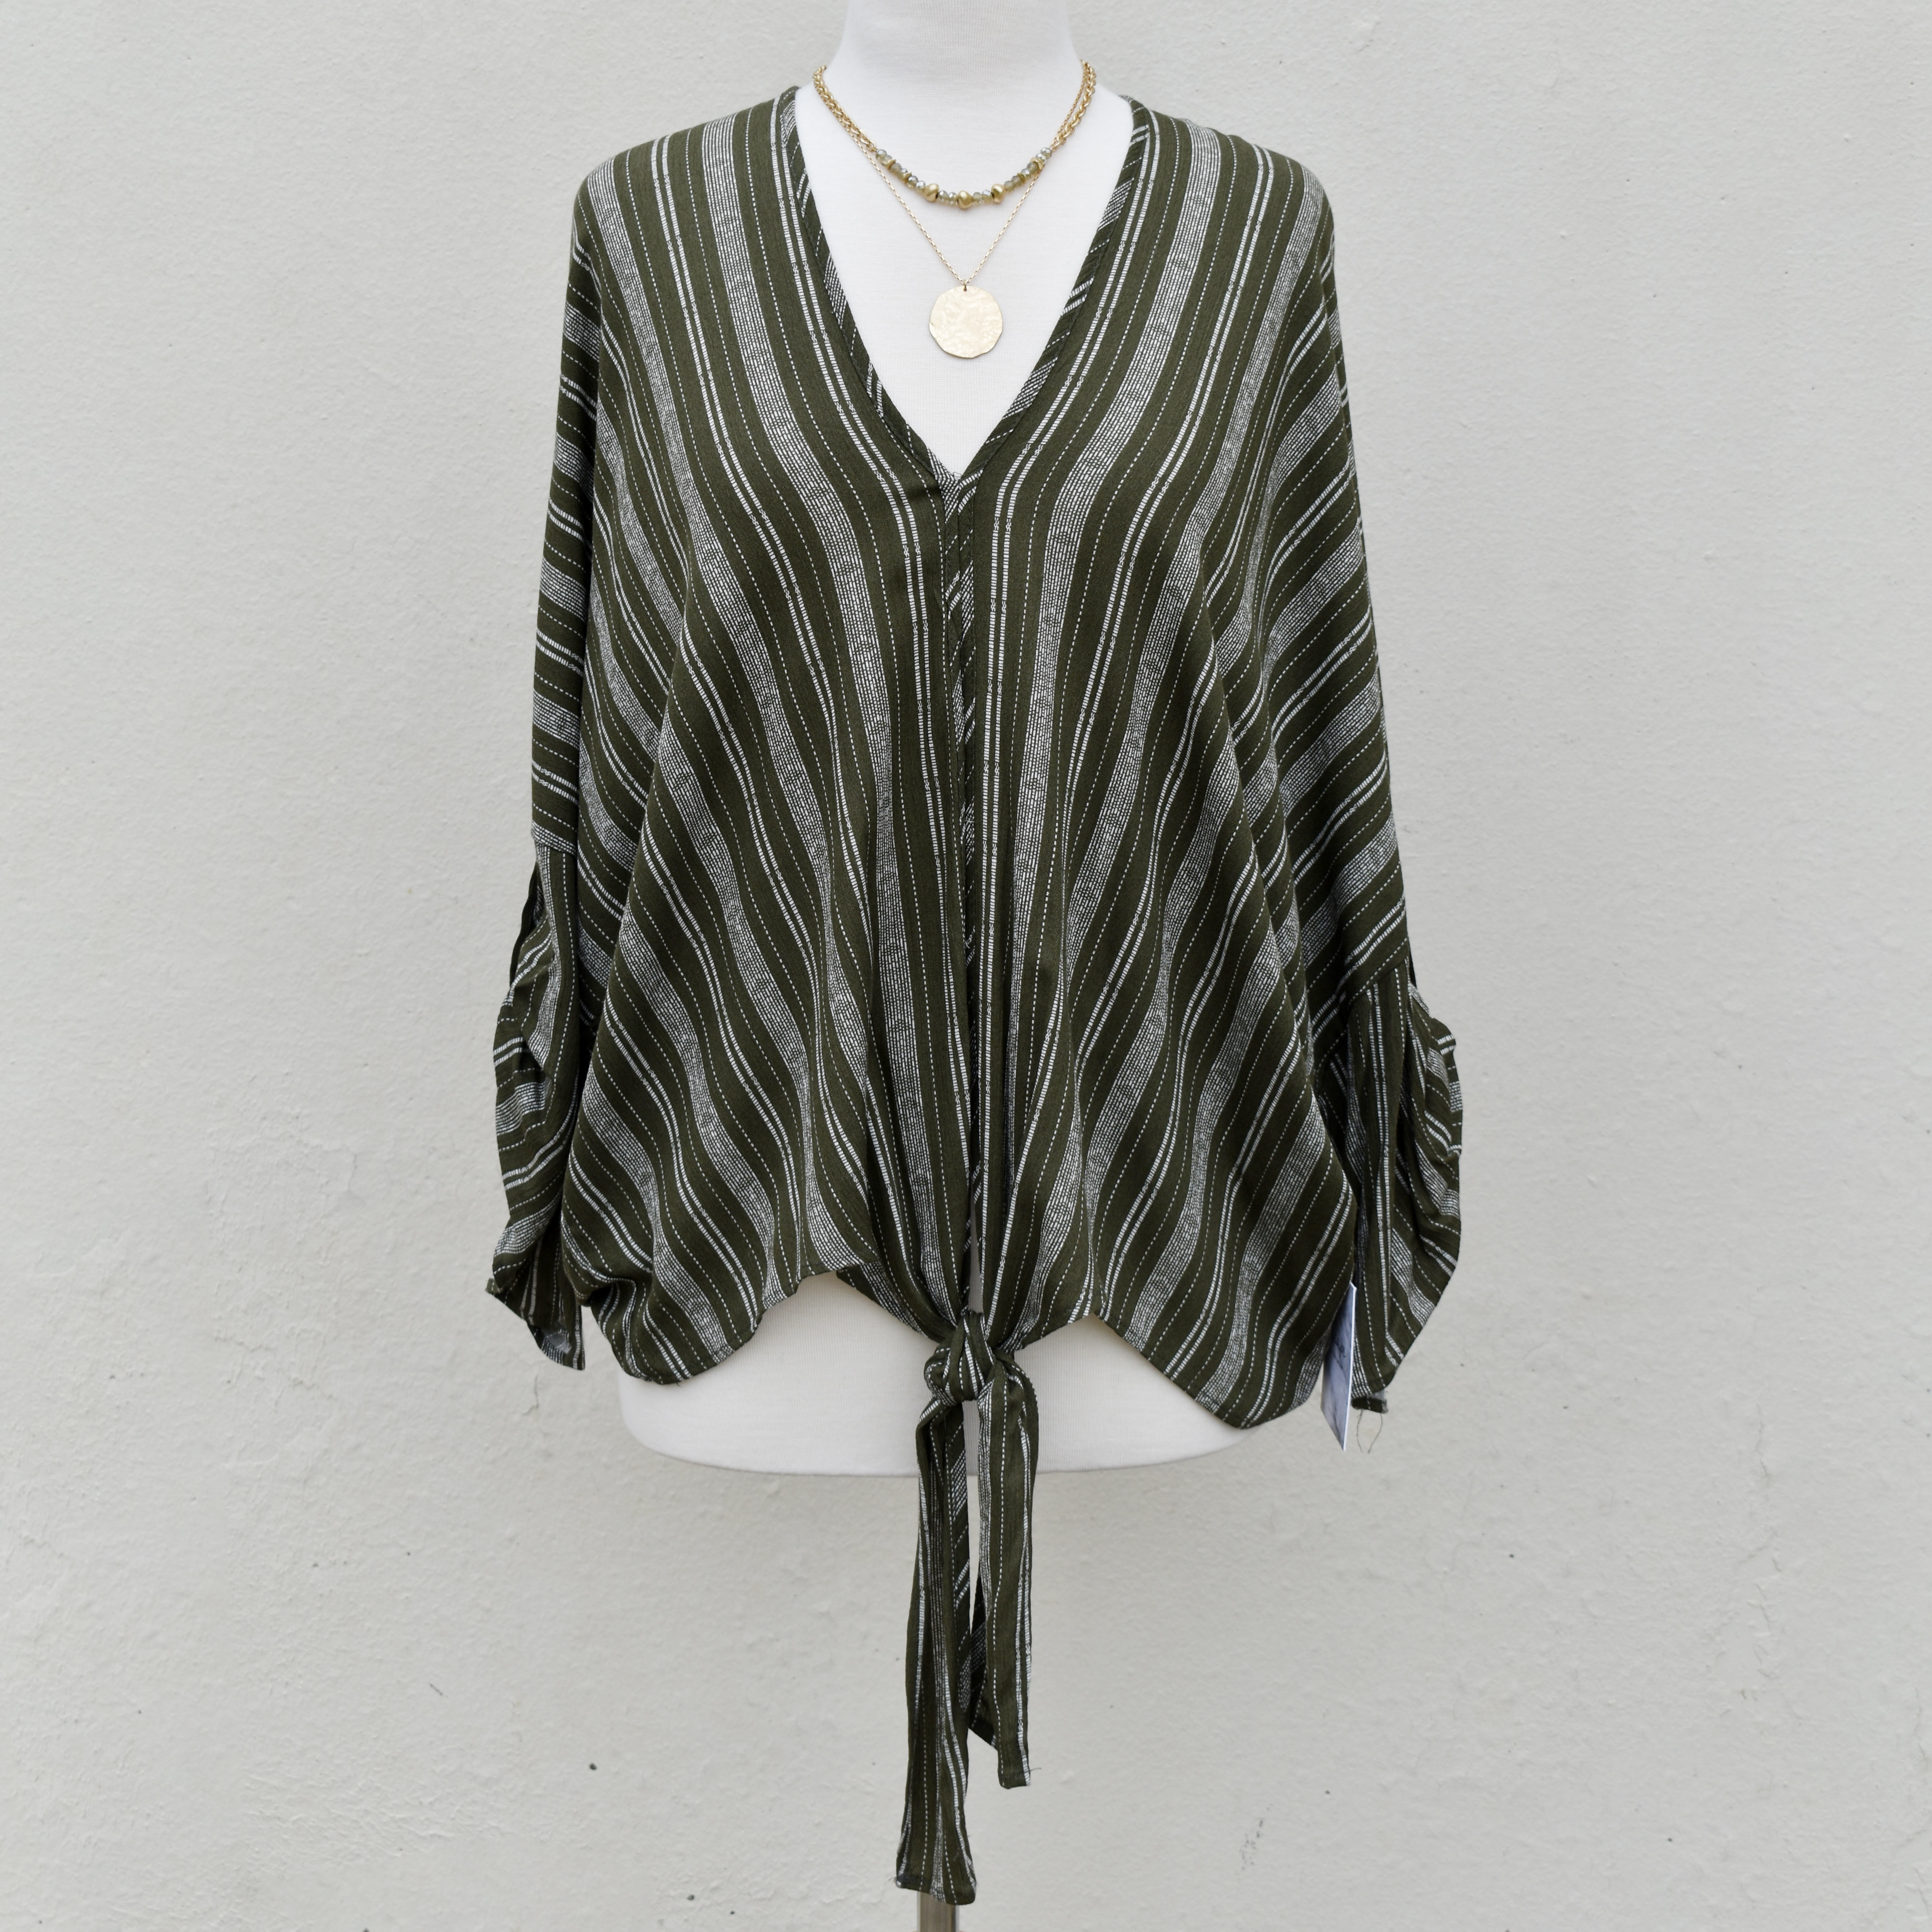 olive stripe top with tie detail